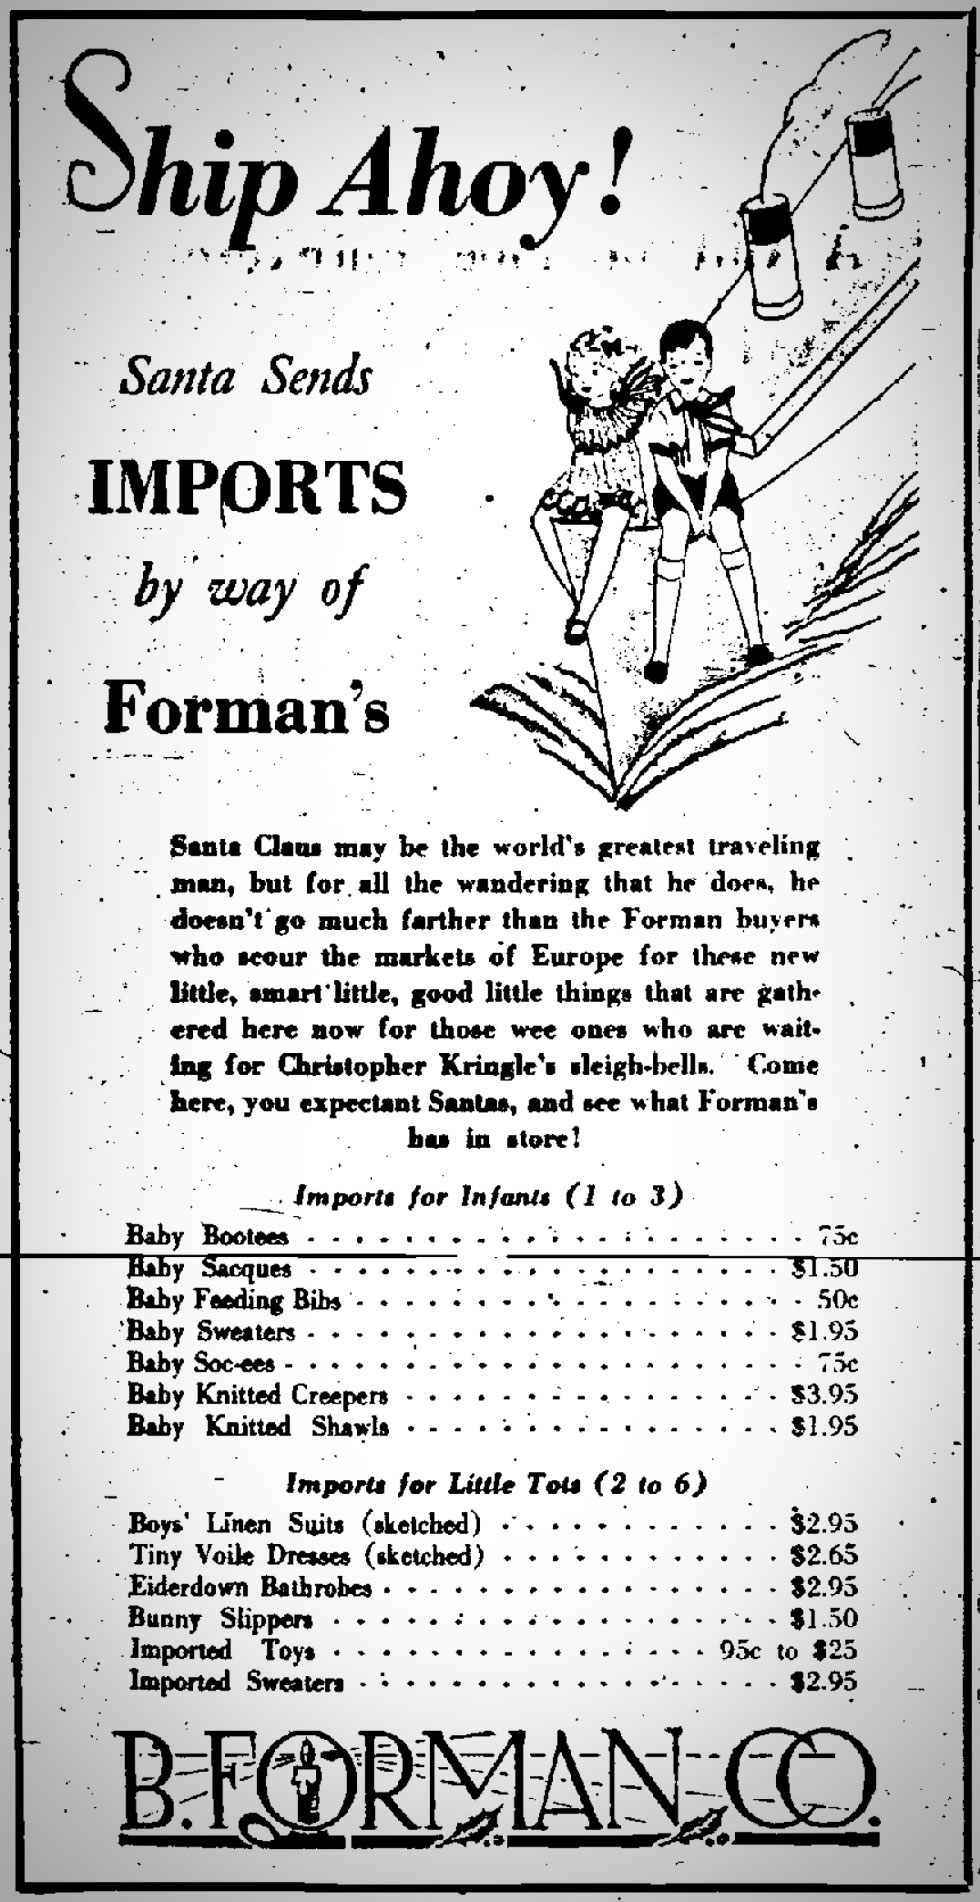 B. Forman Co. advertisment in the Democrat and Chronicle, December 18, 1929. [SOURCE: FultonHistory.com]